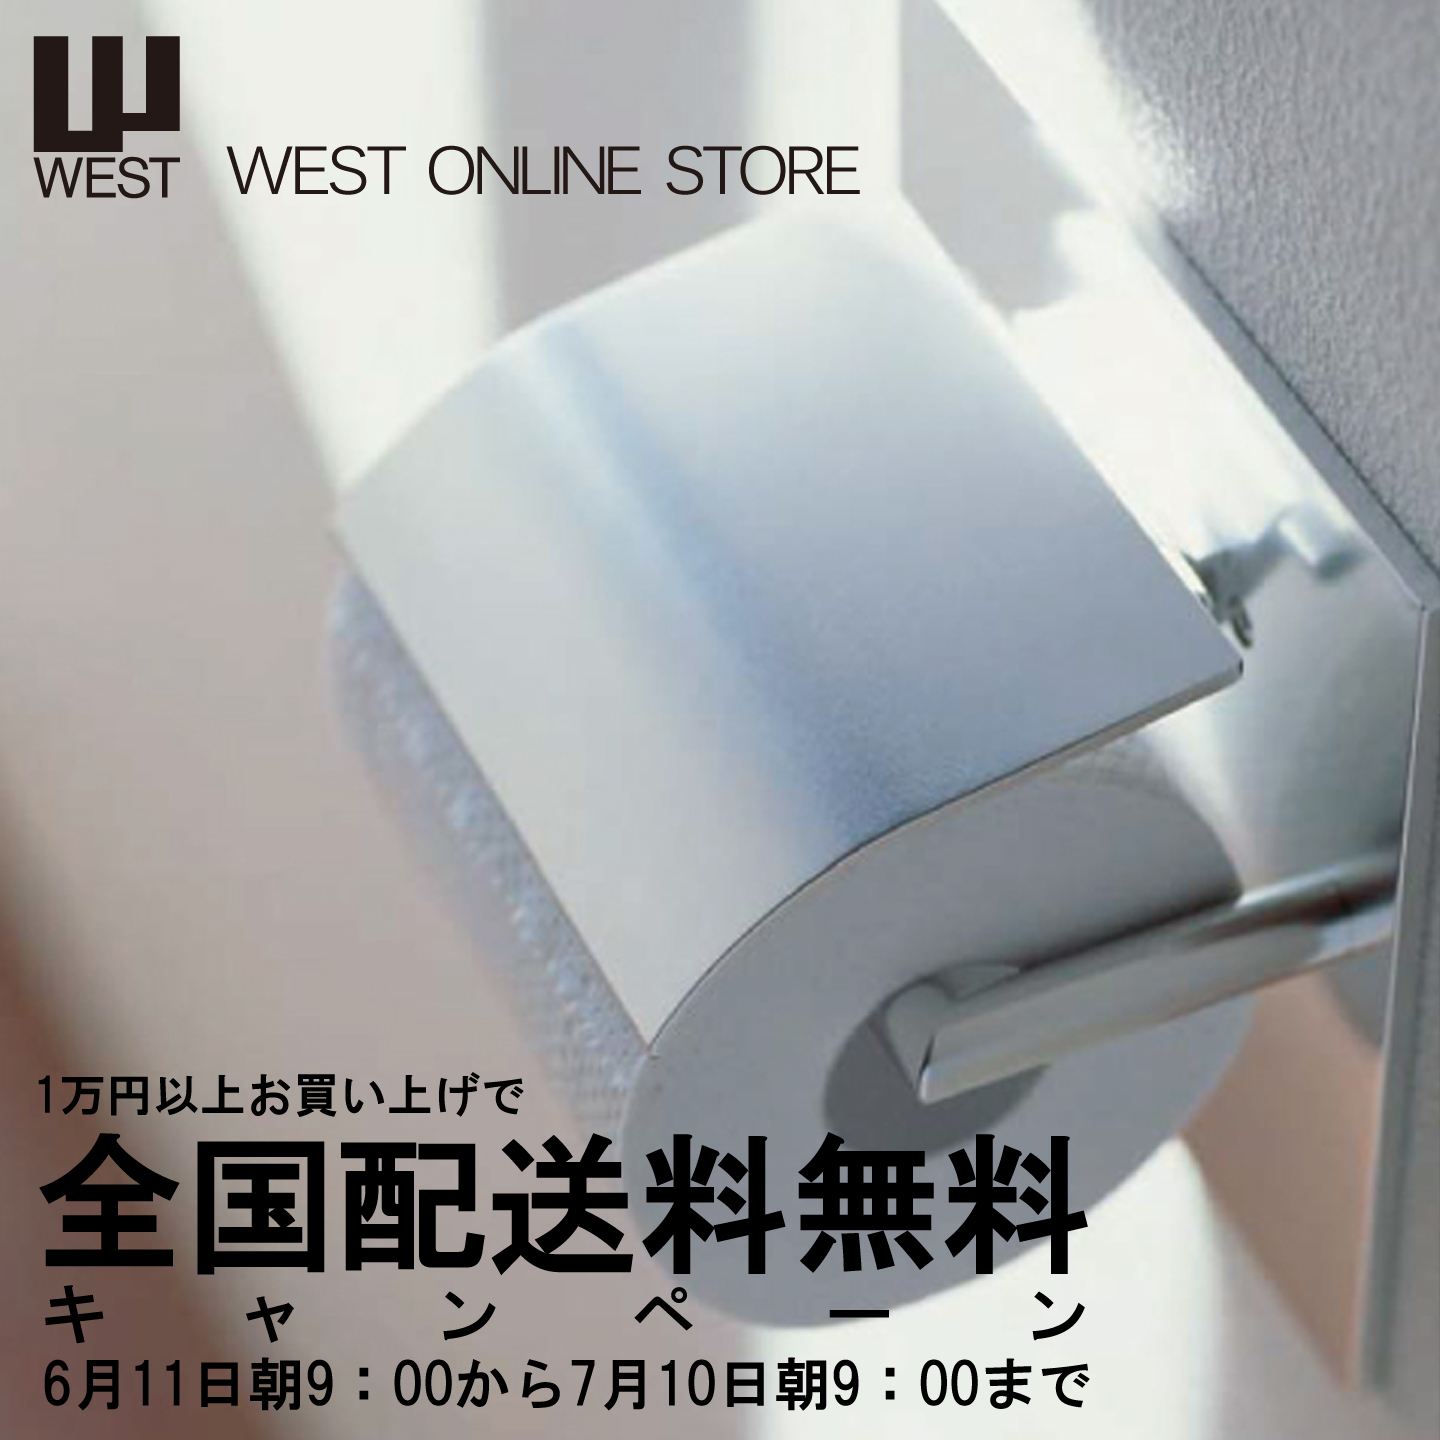 WEST ONLINE STORE送料無料キャンペーンのご案内